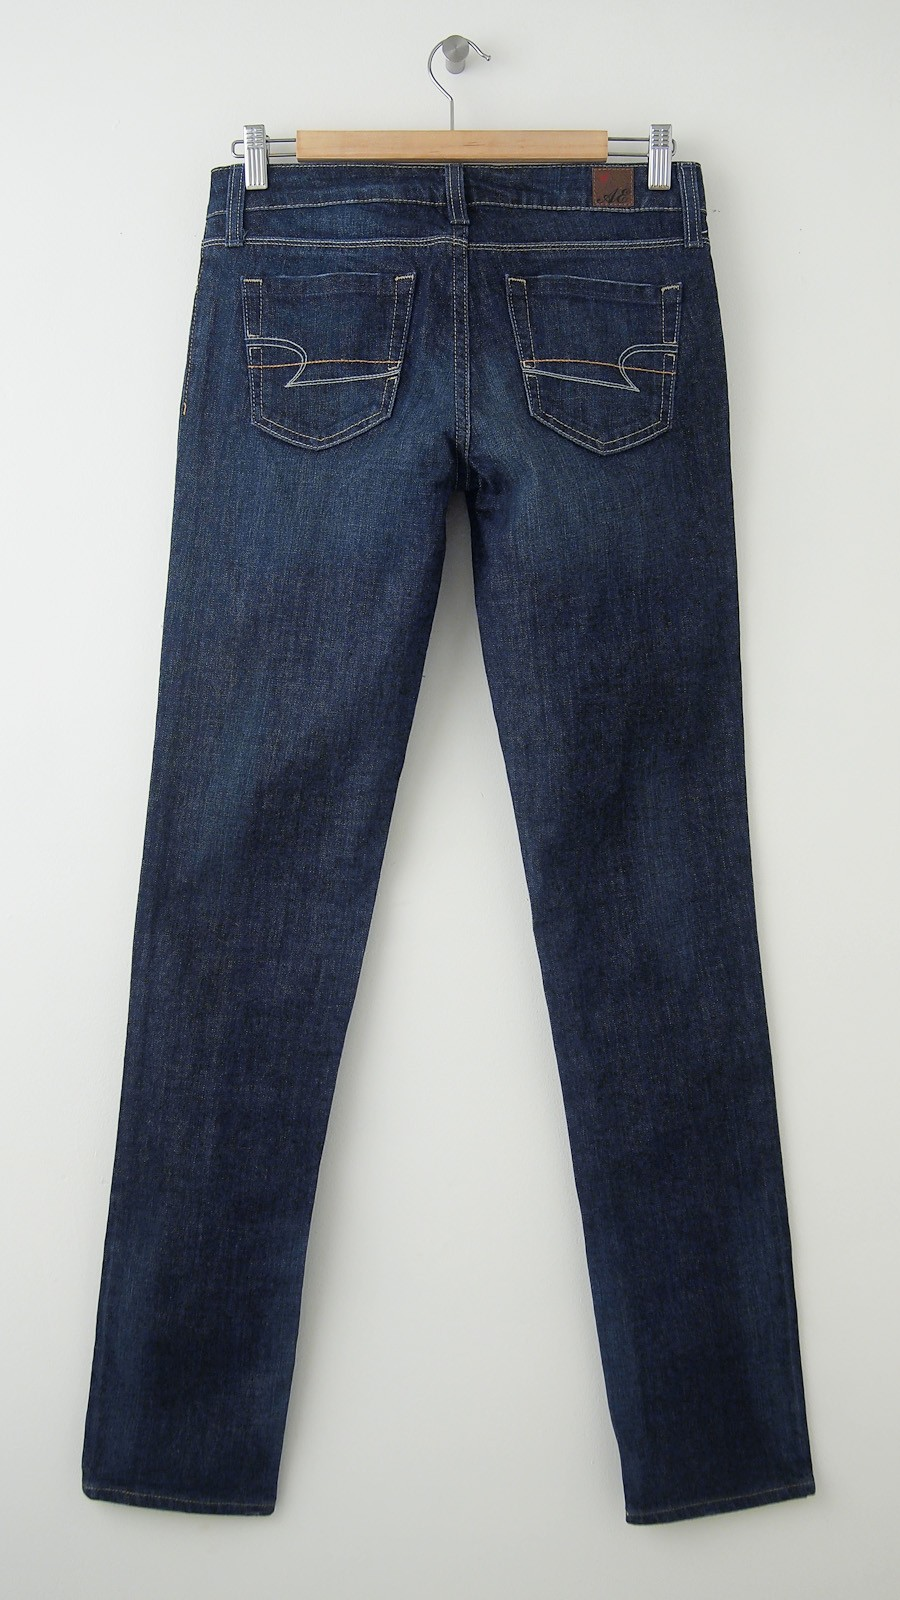 Popular Pants For Women  American Eagle Outfitters